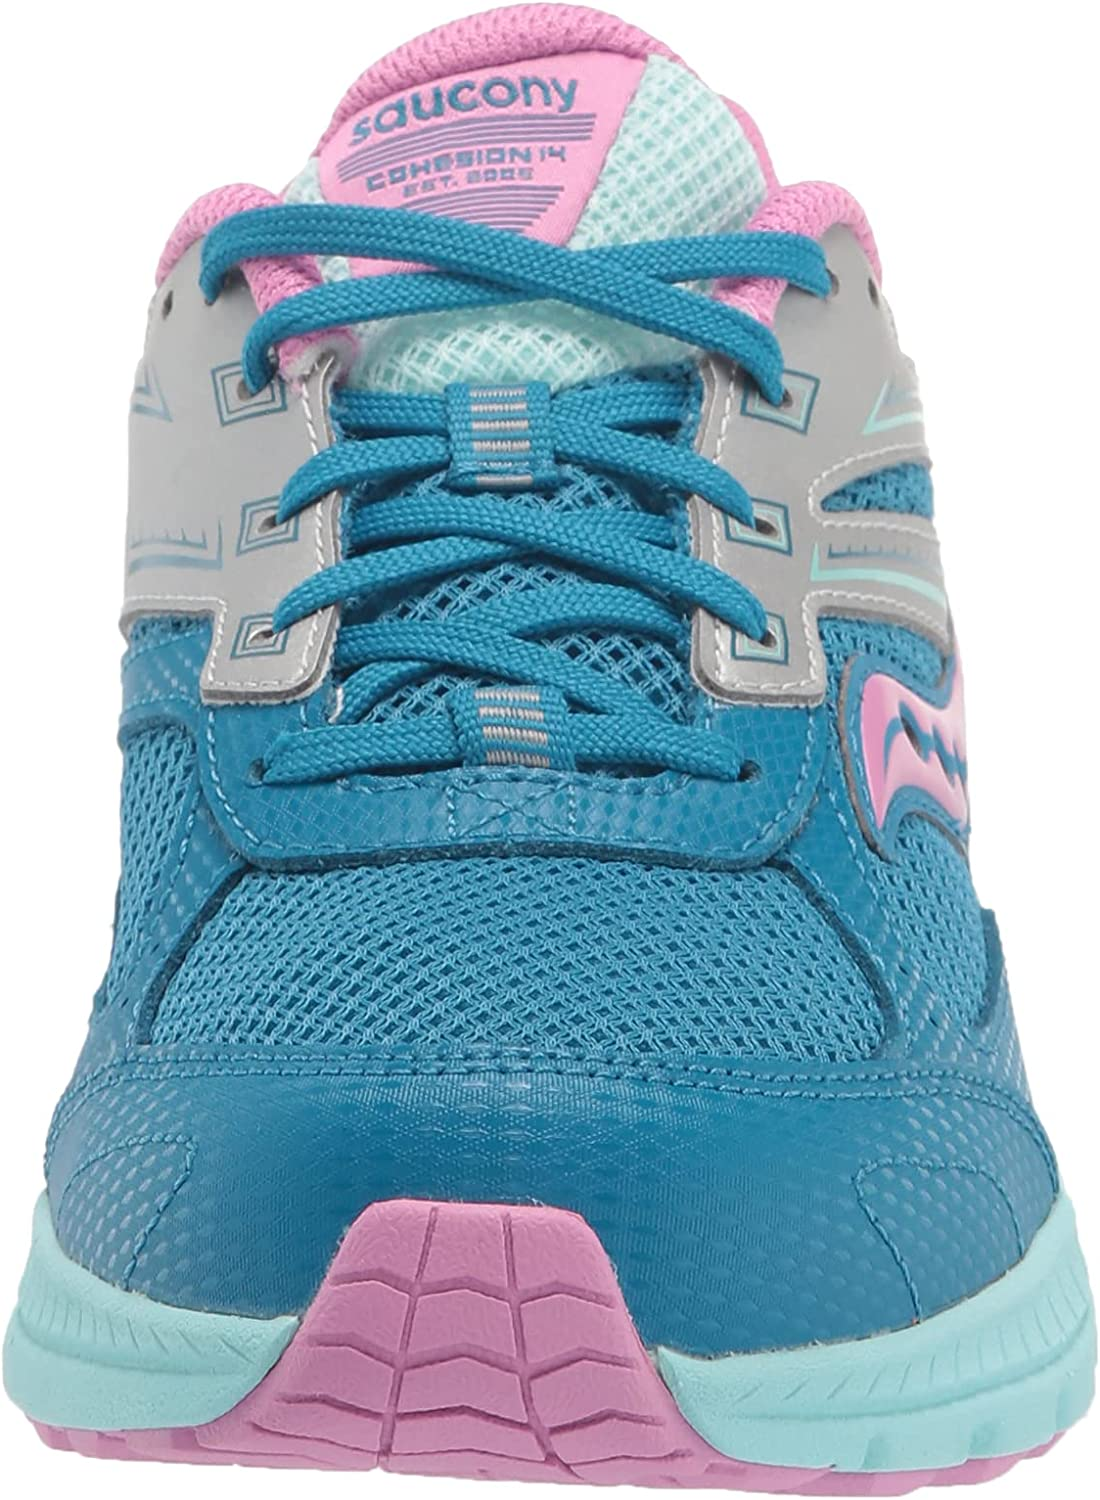 Saucony Cohesion 14 LACE to Toe Running Shoe, Turq/Pink, 5 Wide US Unisex Big_Kid